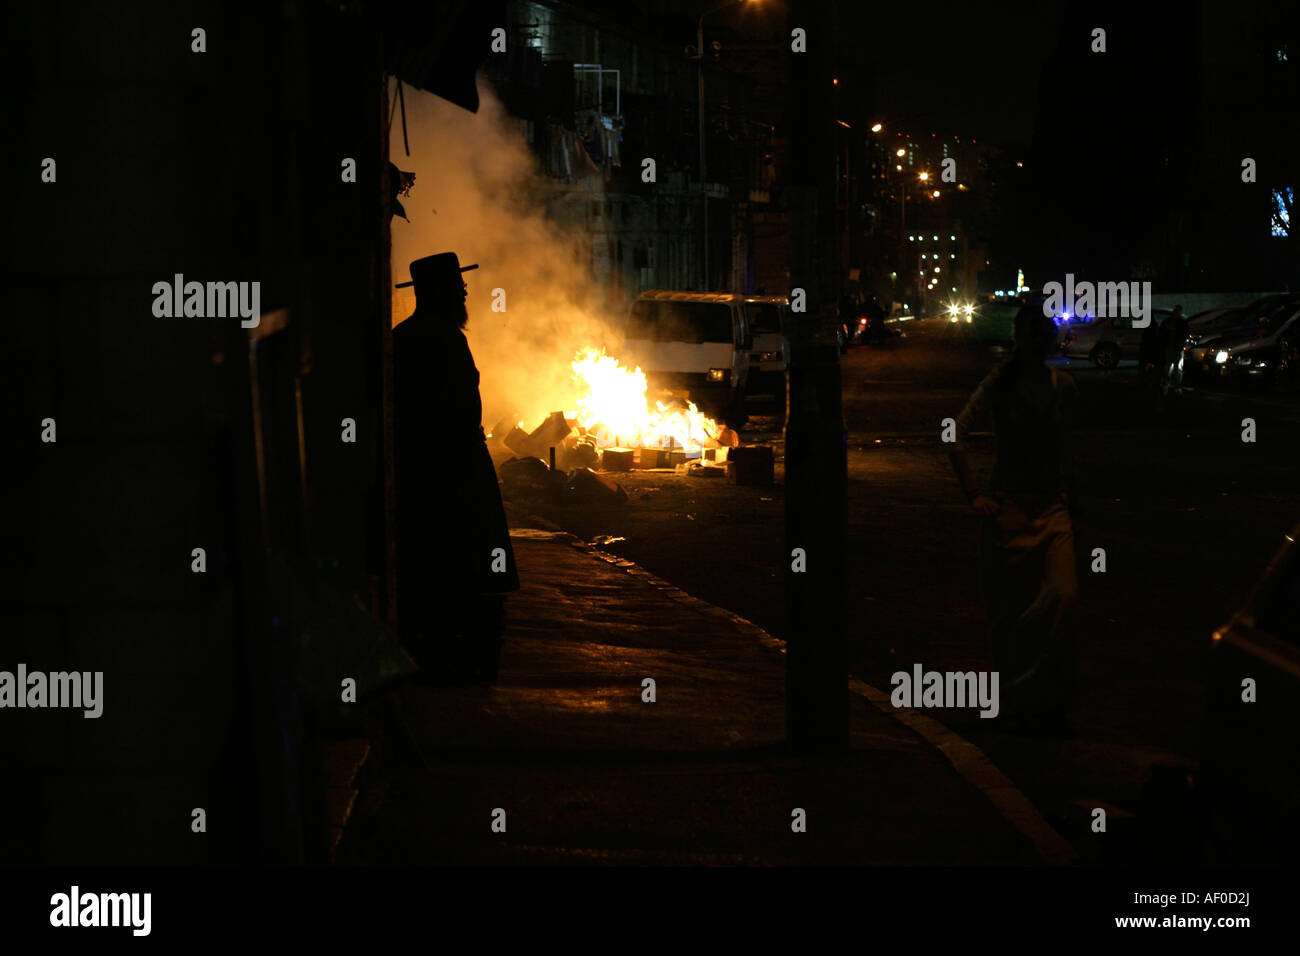 silhouette of hasidic jew standing in front of blazing riot fires jerusalem israel Stock Photo